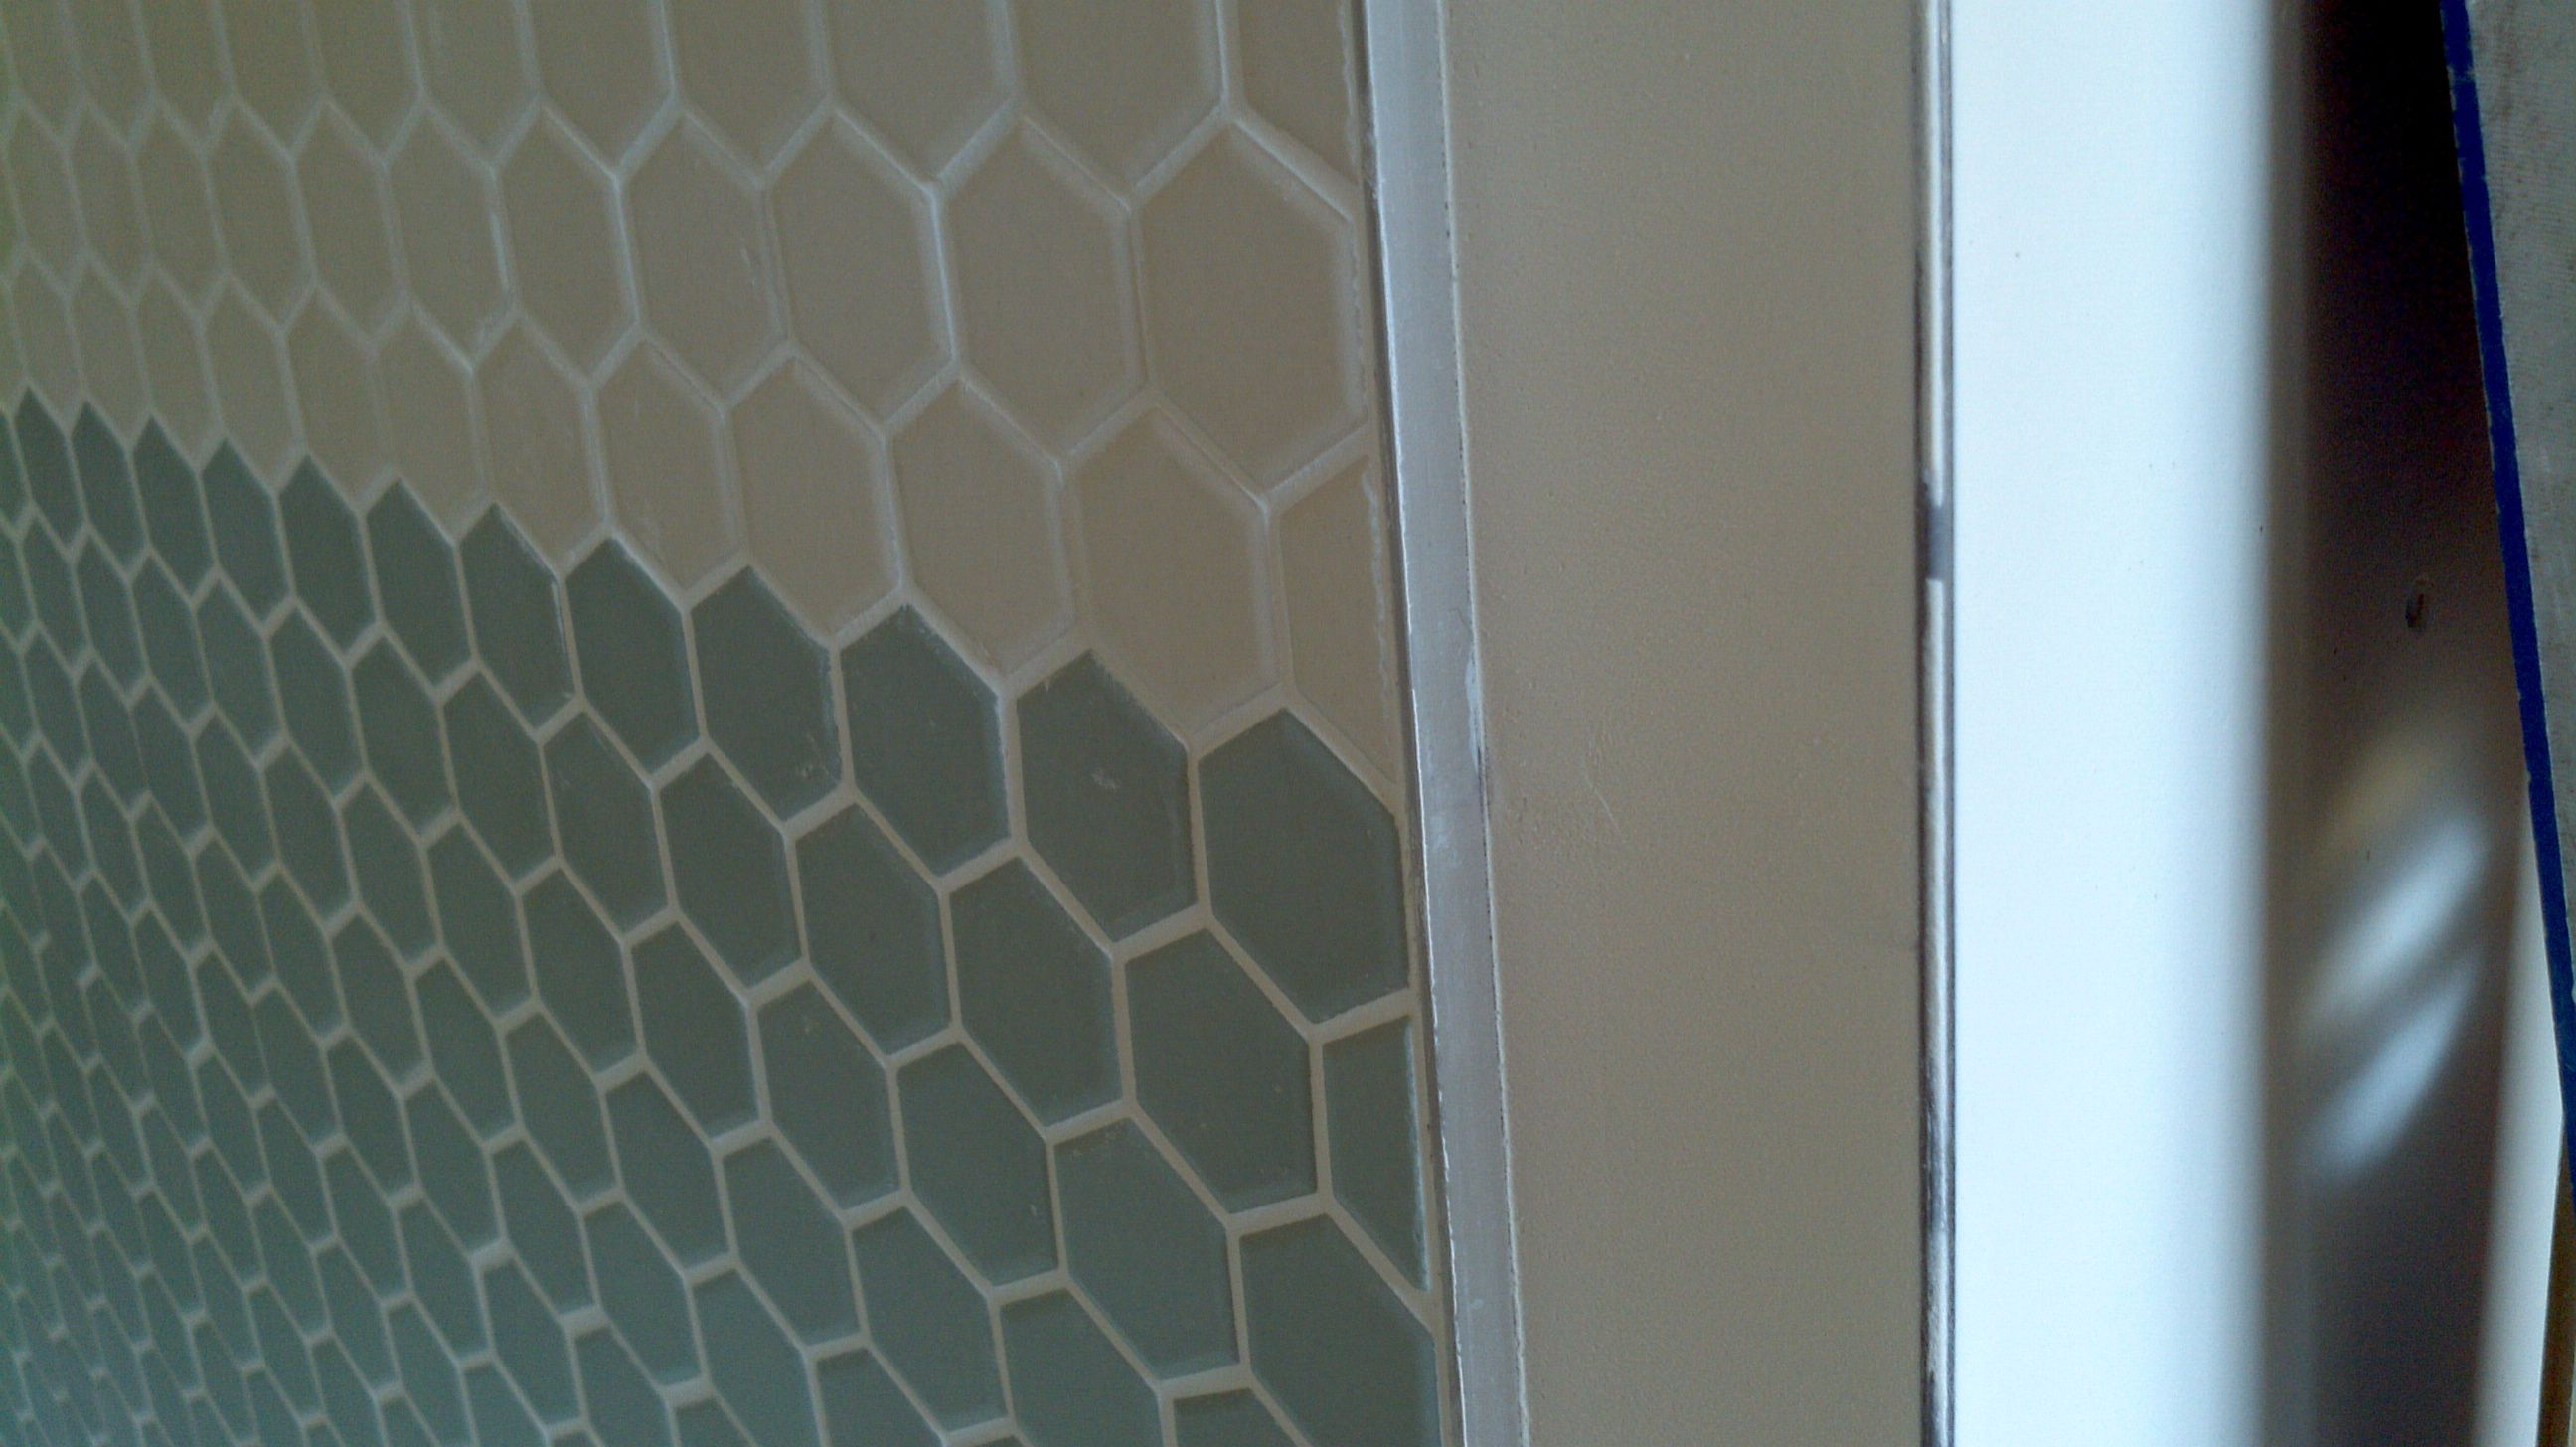 Showing Schluter Edge Backsplash Bathroom Wall Tile Tile Edge Tile Edge Trim